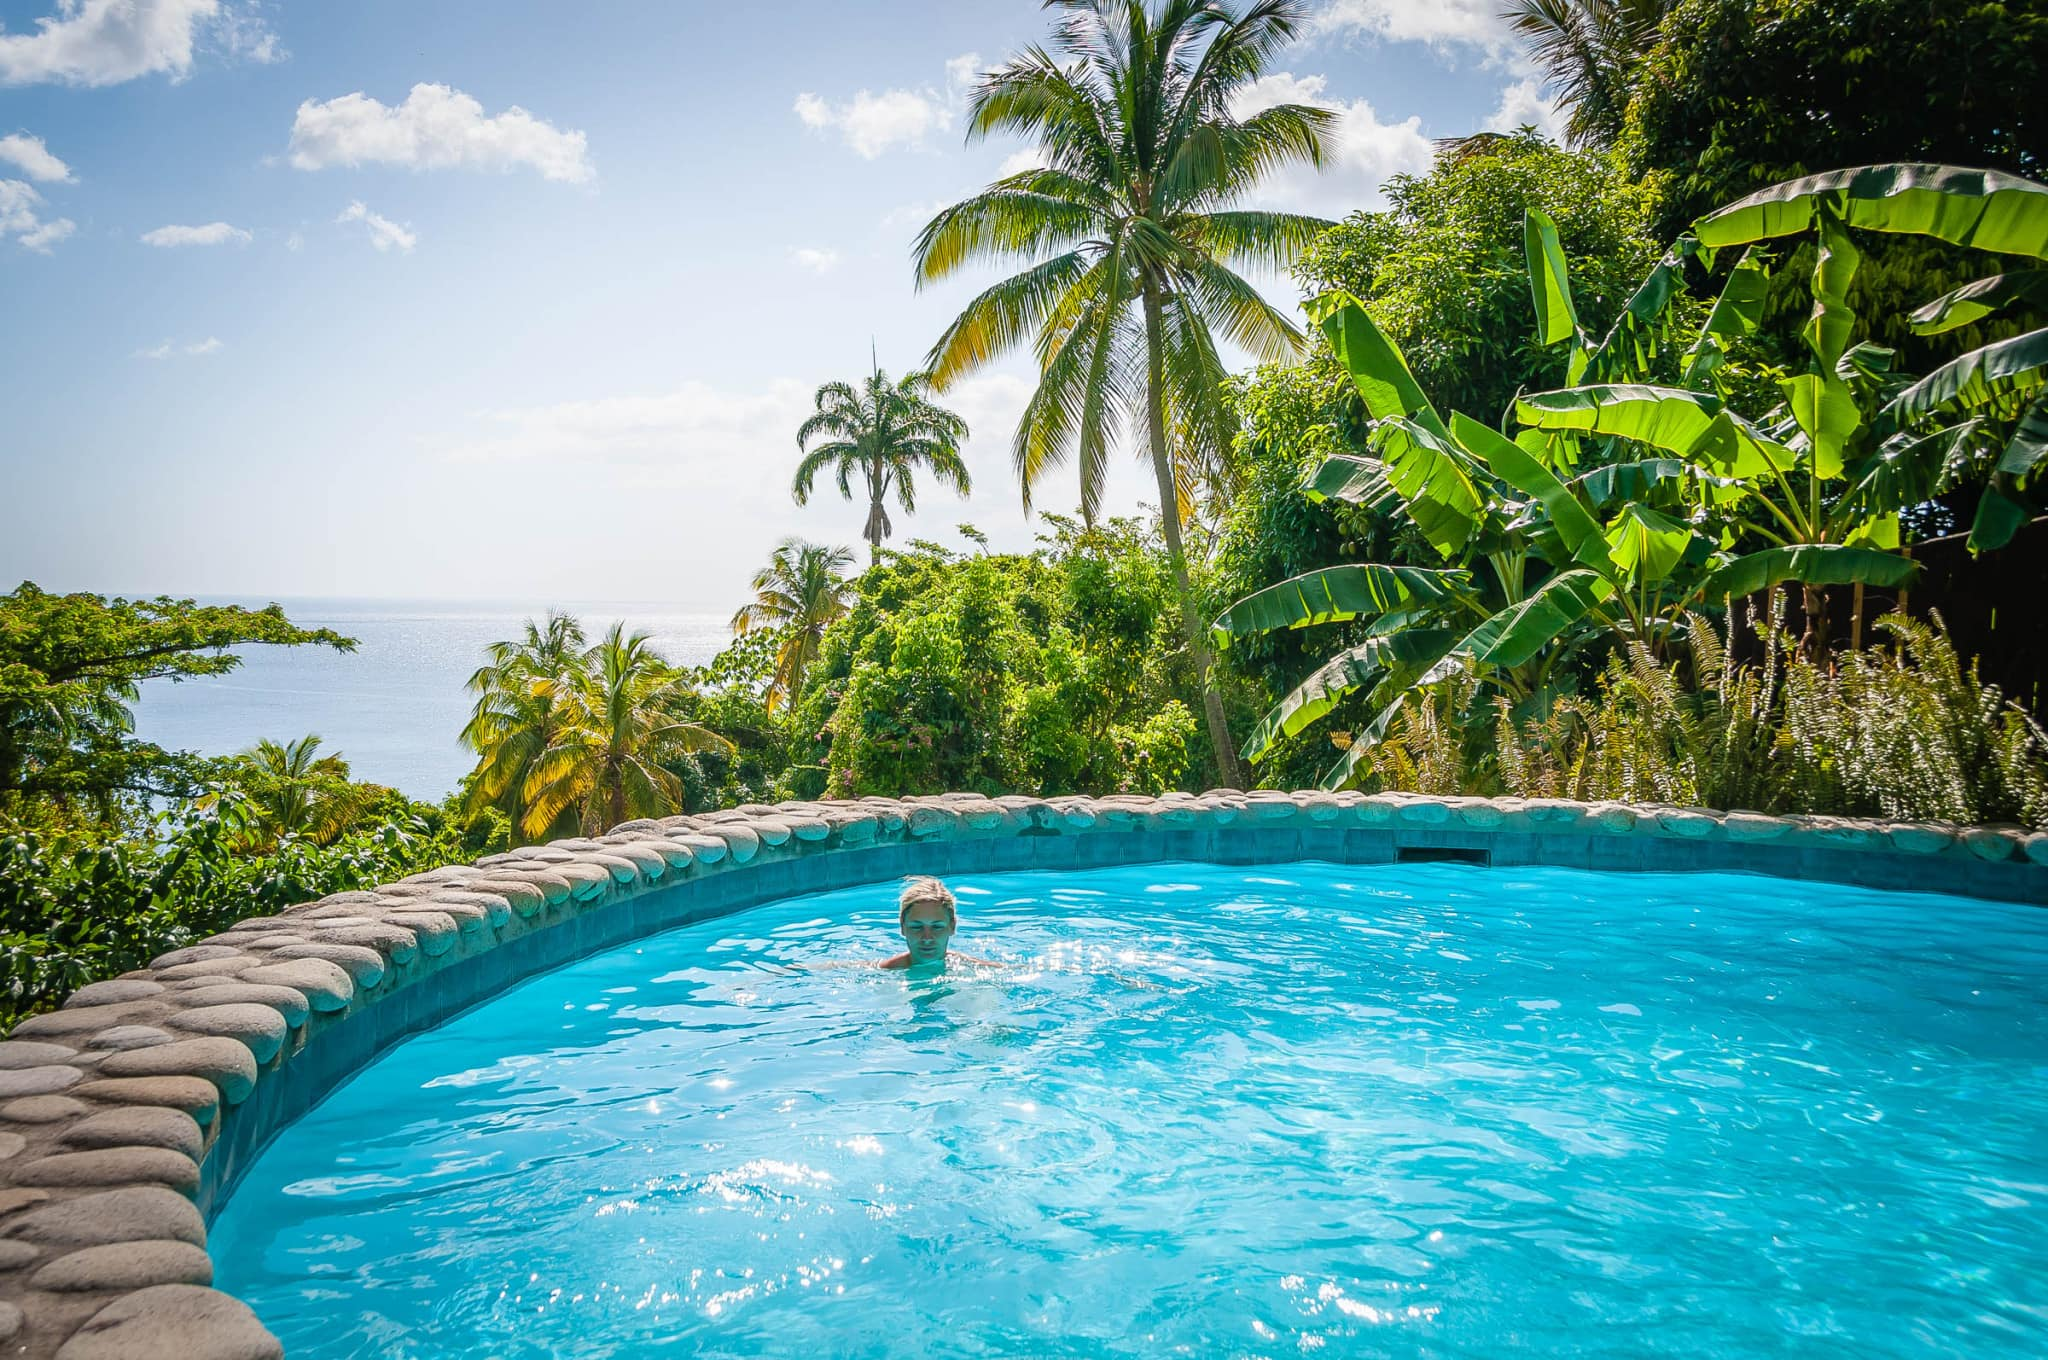 Taking a Secluded Dip in Your Private Pool, St. Lucia: Wish You Were Here